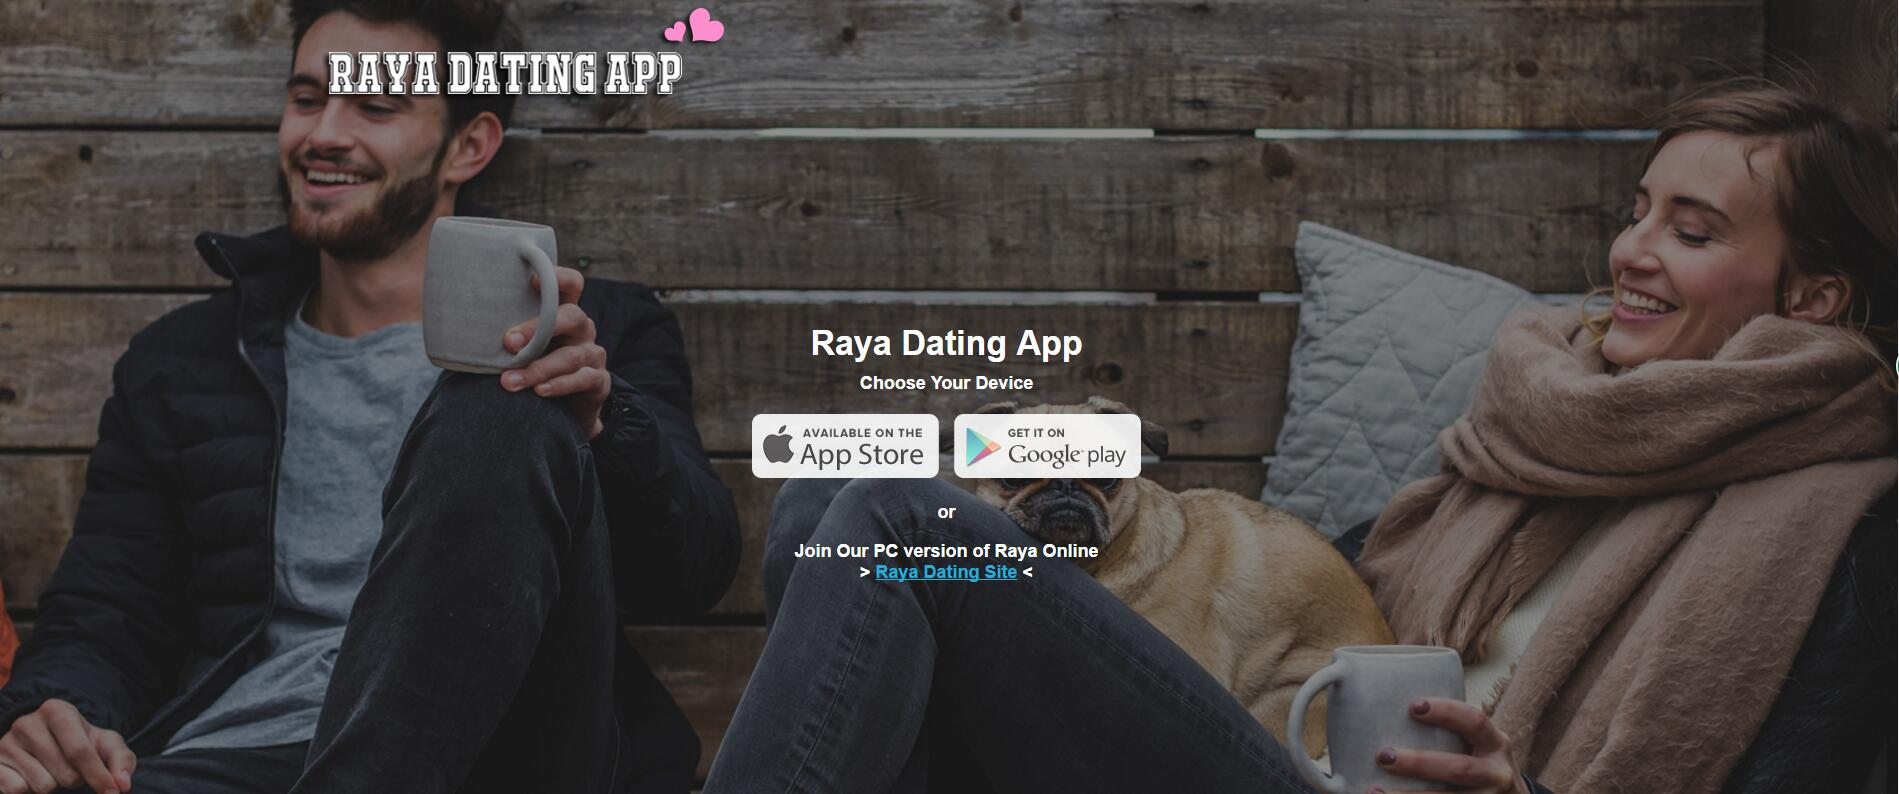 Famous person dating app